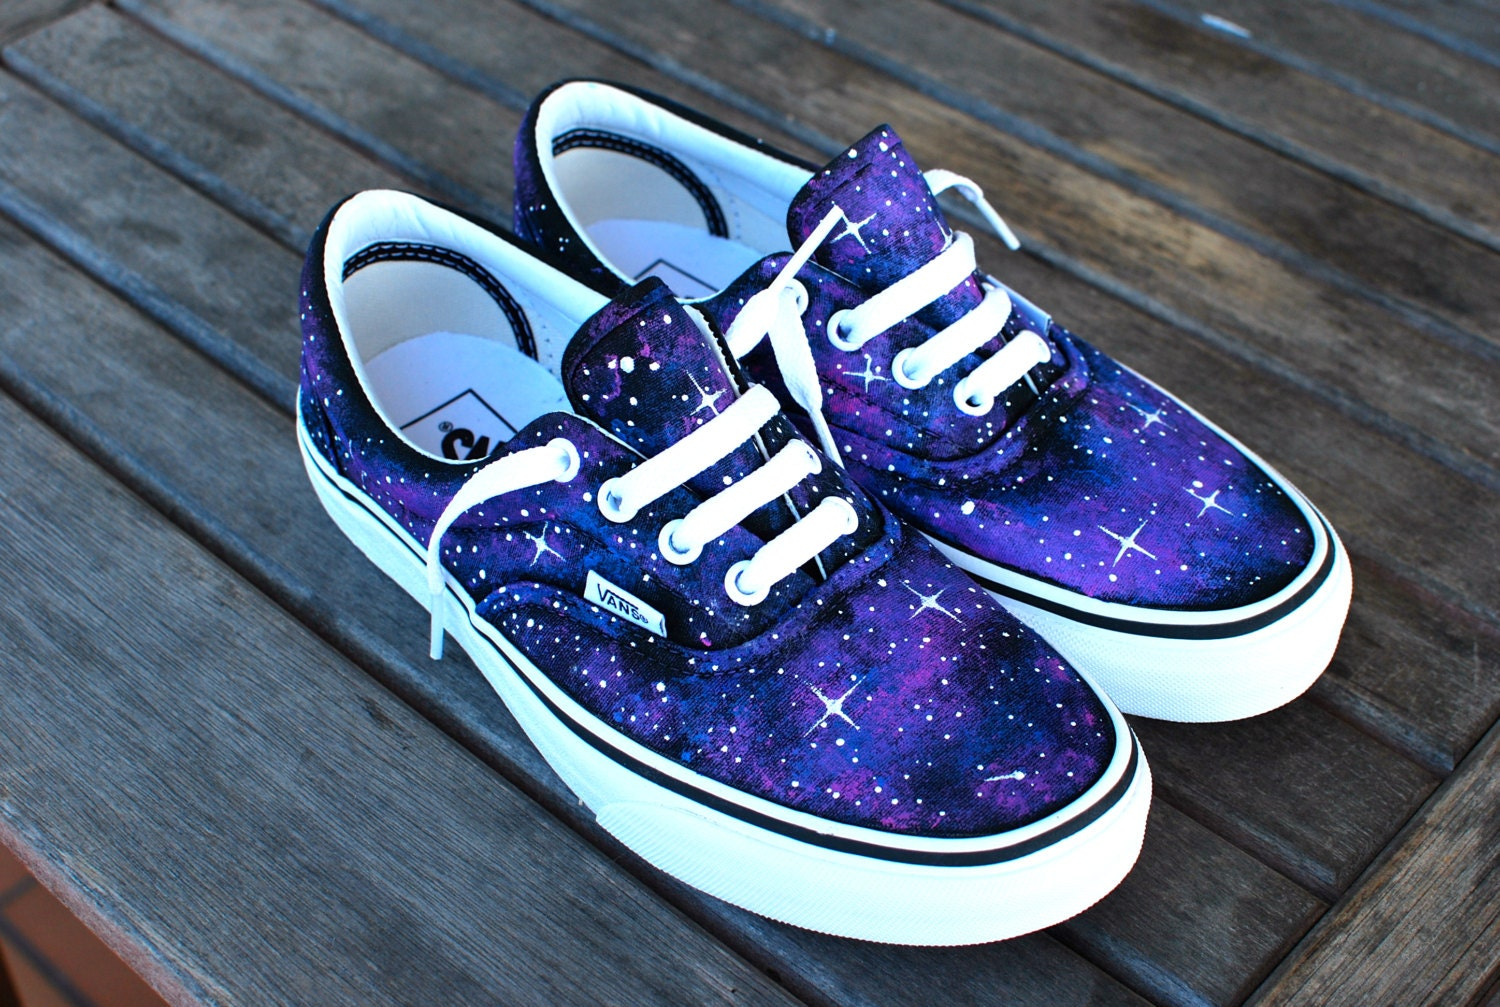 Nike Starry Night Shoes